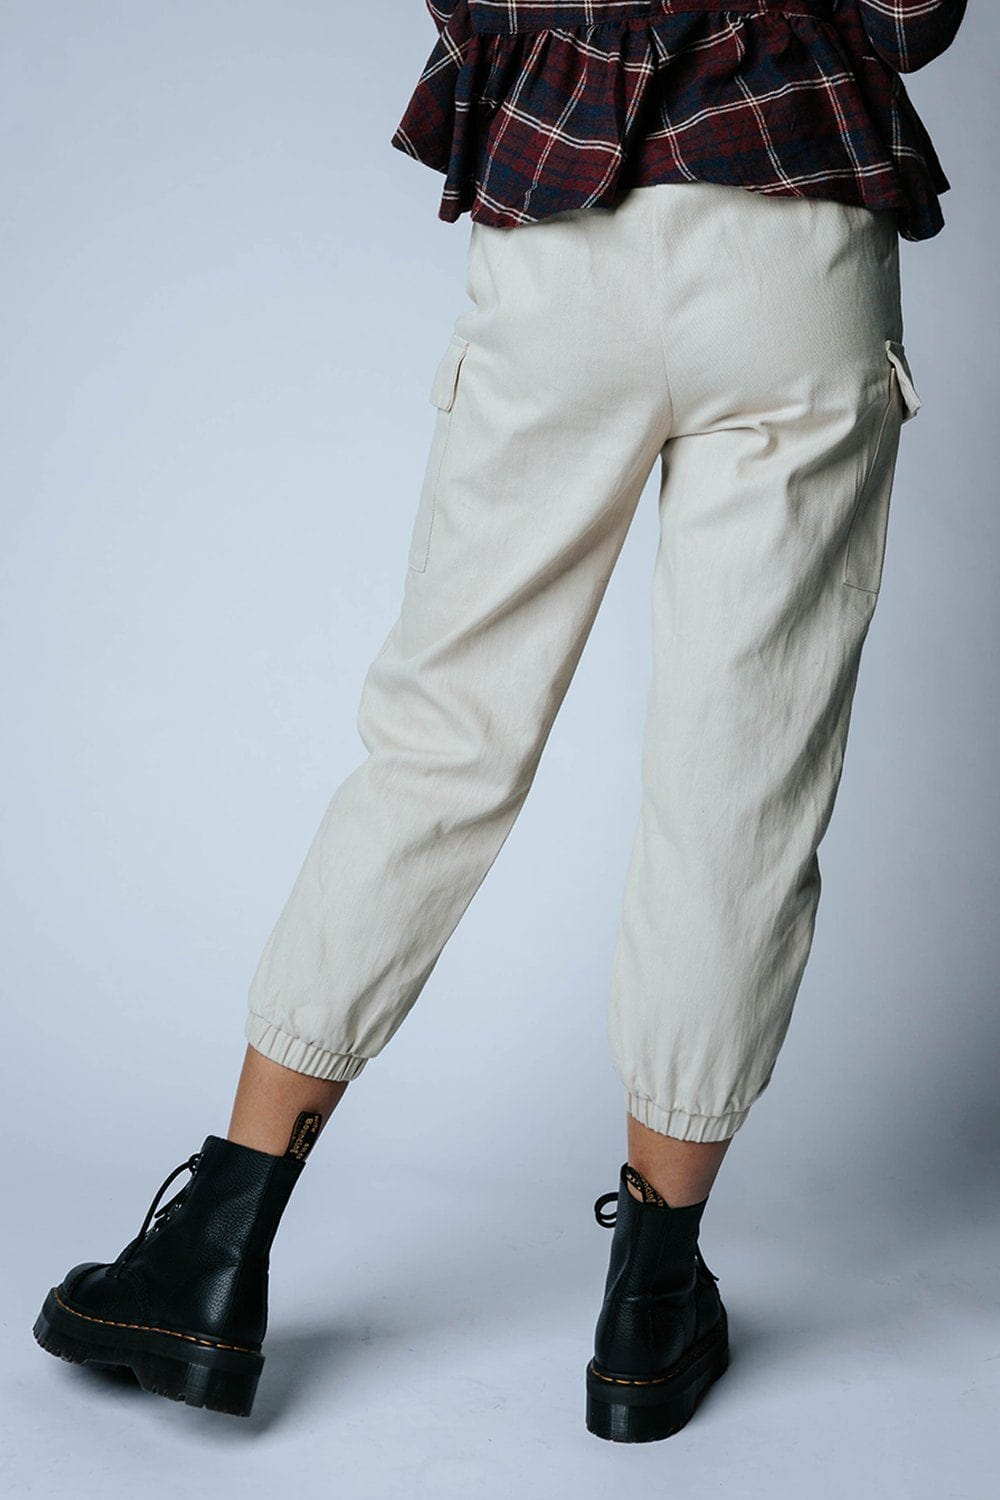 Clad and Cloth, Step Up Jogger Pant in Beige, Crescent, Bottom.